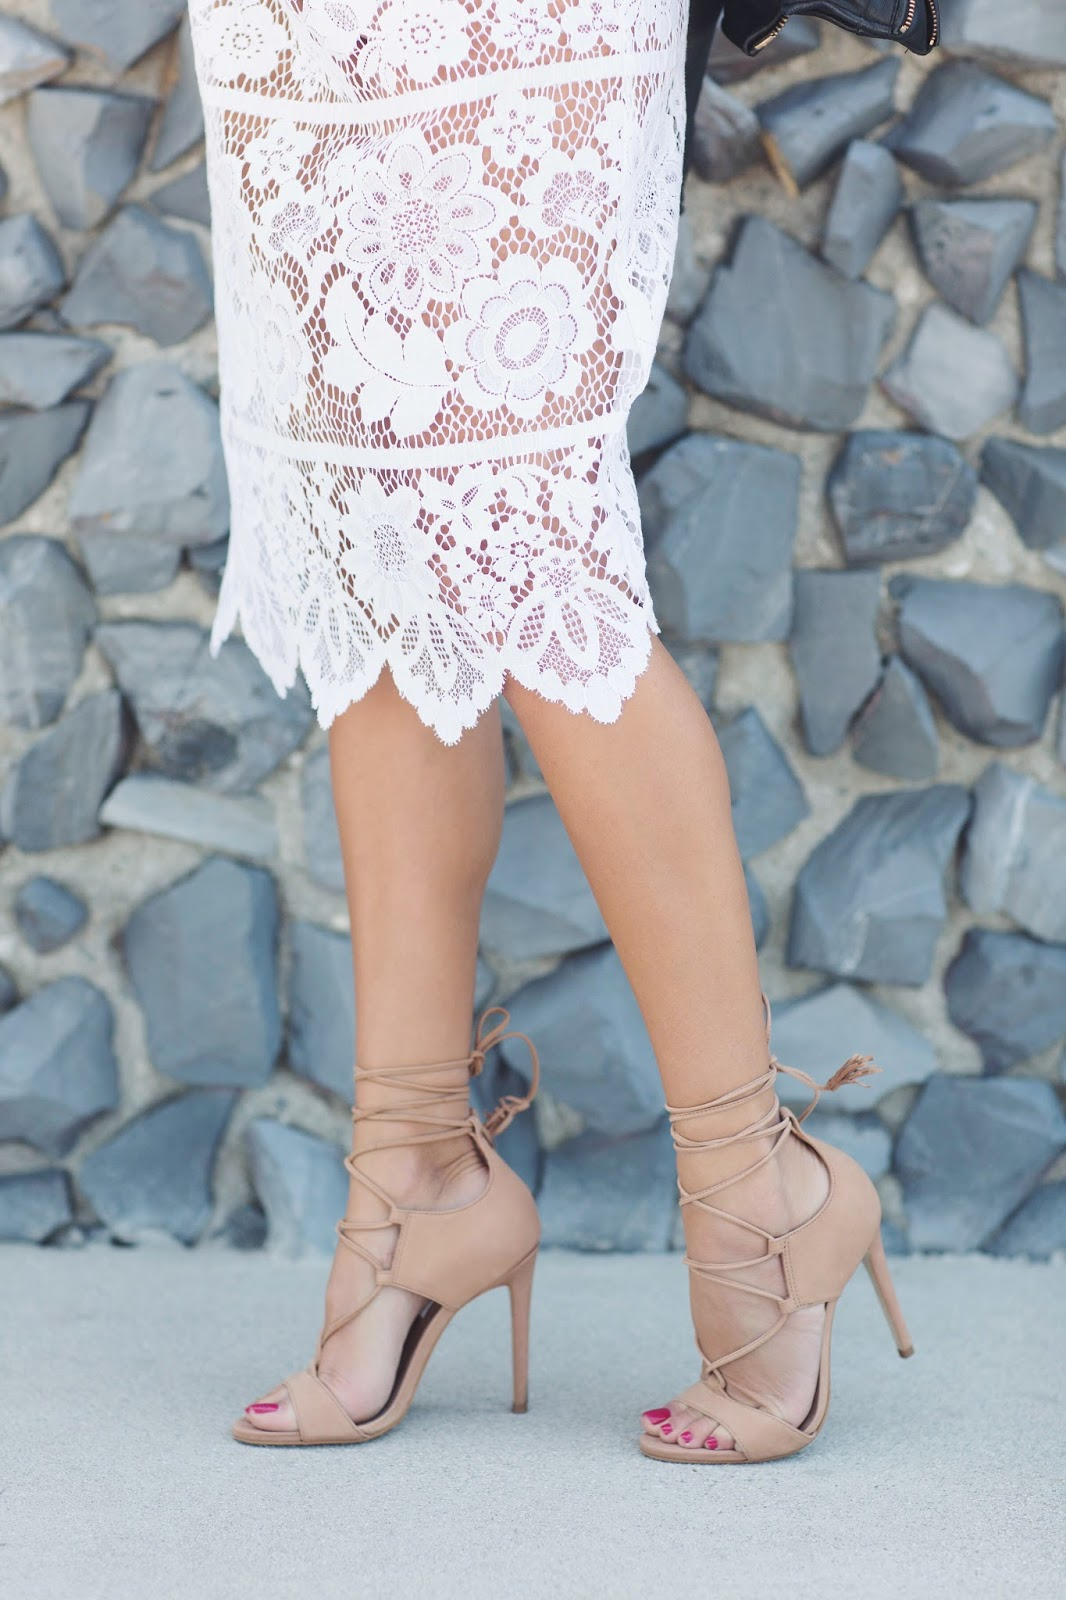 {for love lemons lace dress // steve madden 'sanibell' heels // zara  leather jacket - similar here // crap sunglasses}